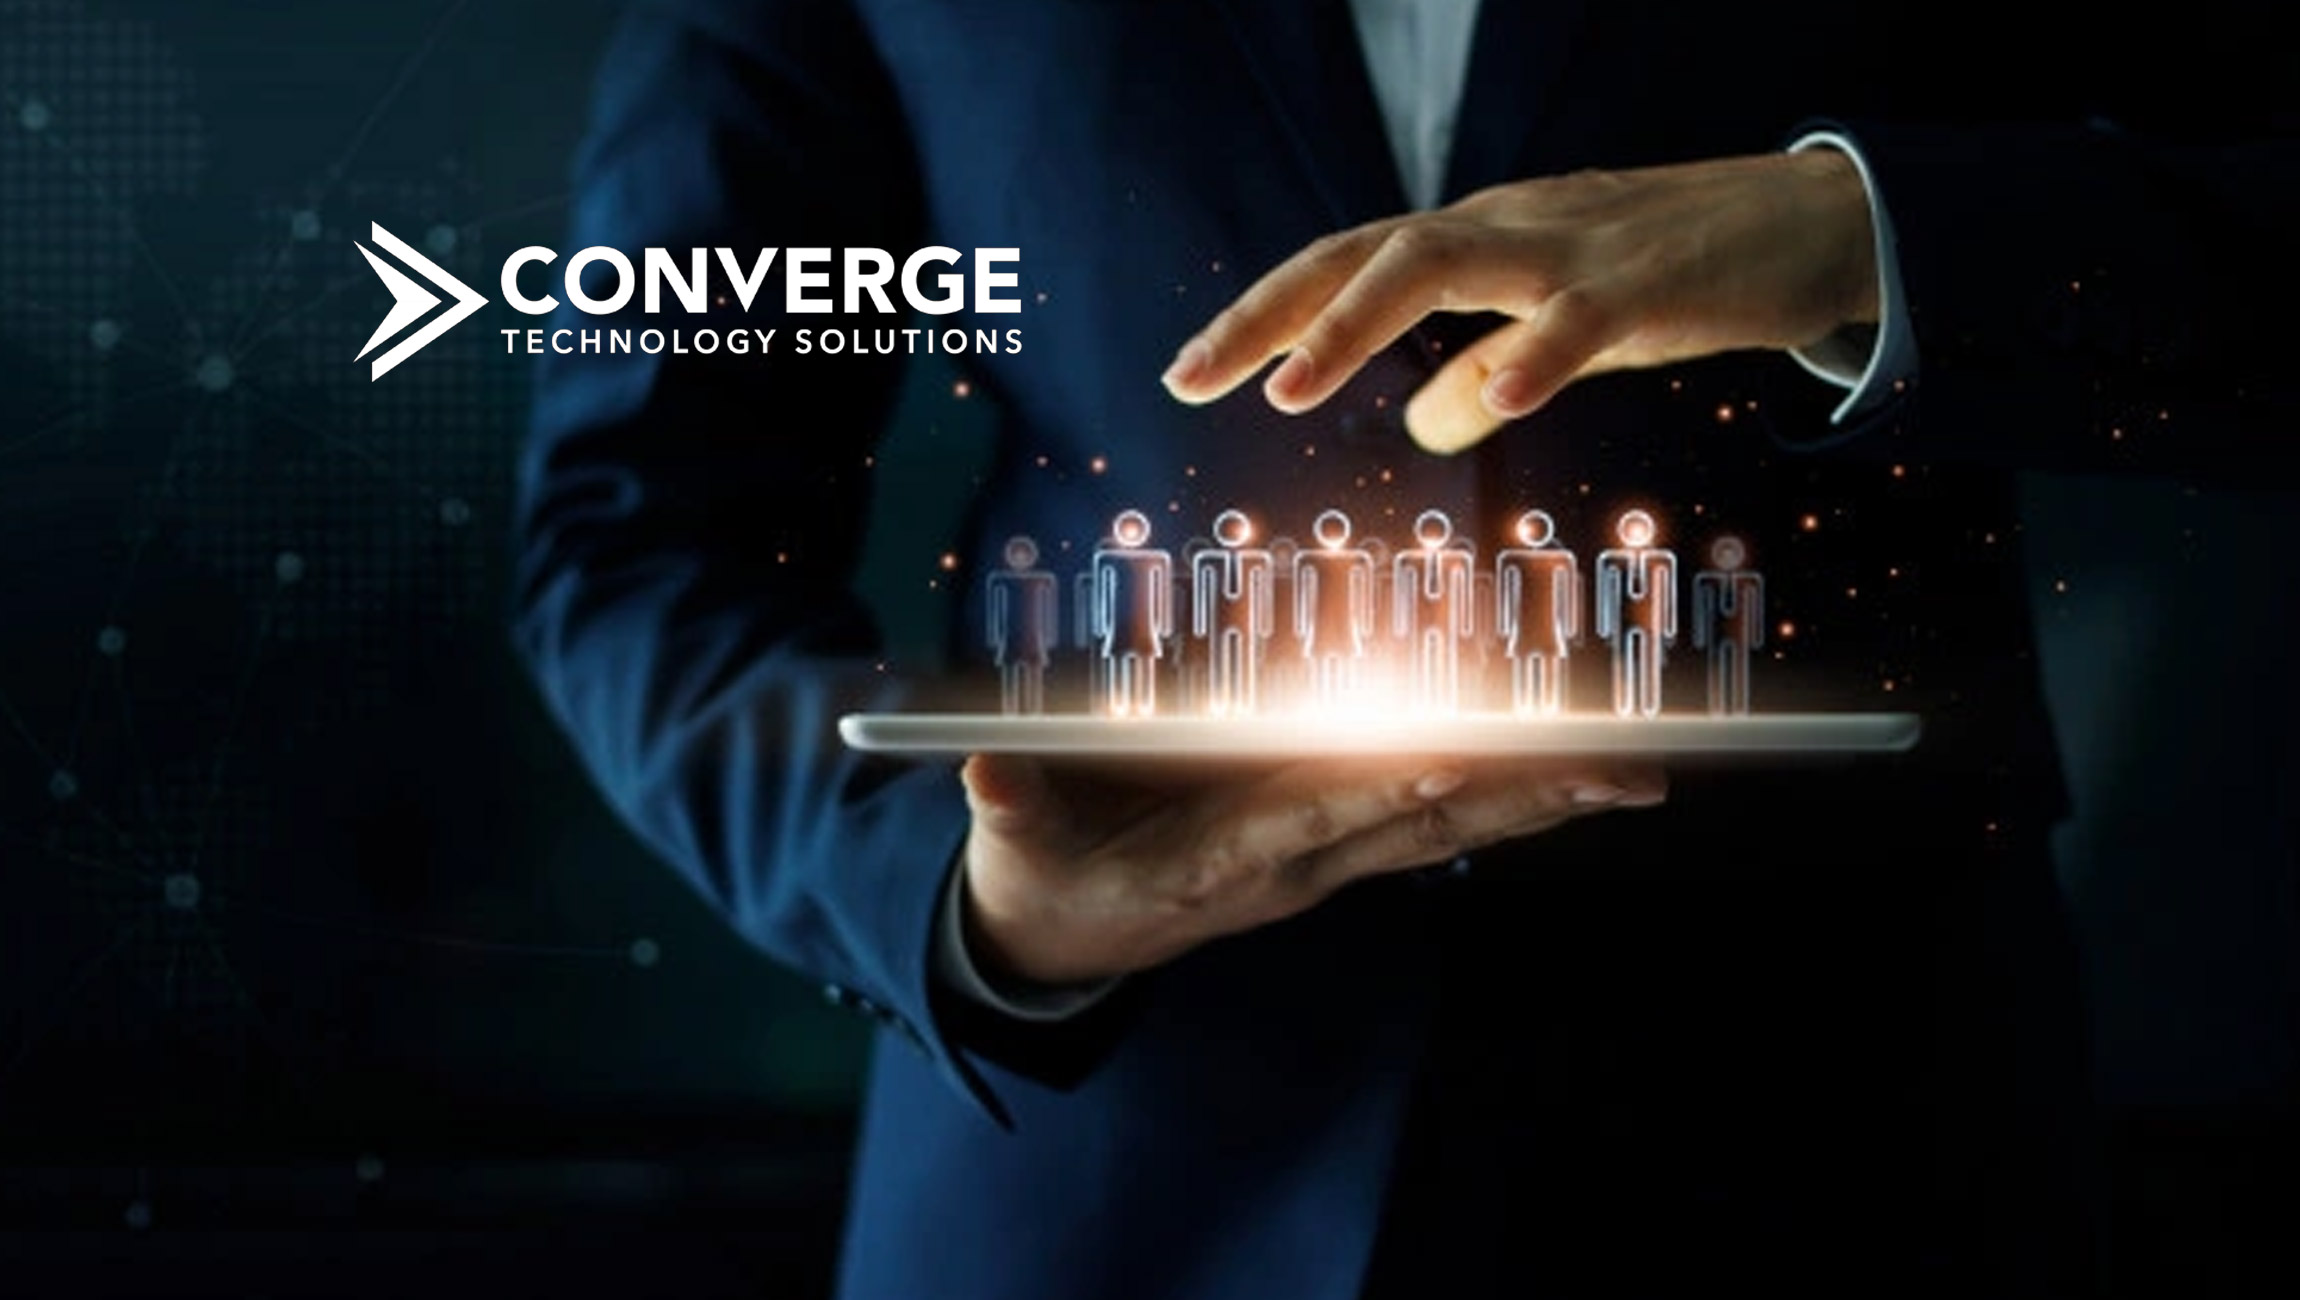 Converge-Technology-Solutions-Corp.-Announces-Board-and-Management-Changes